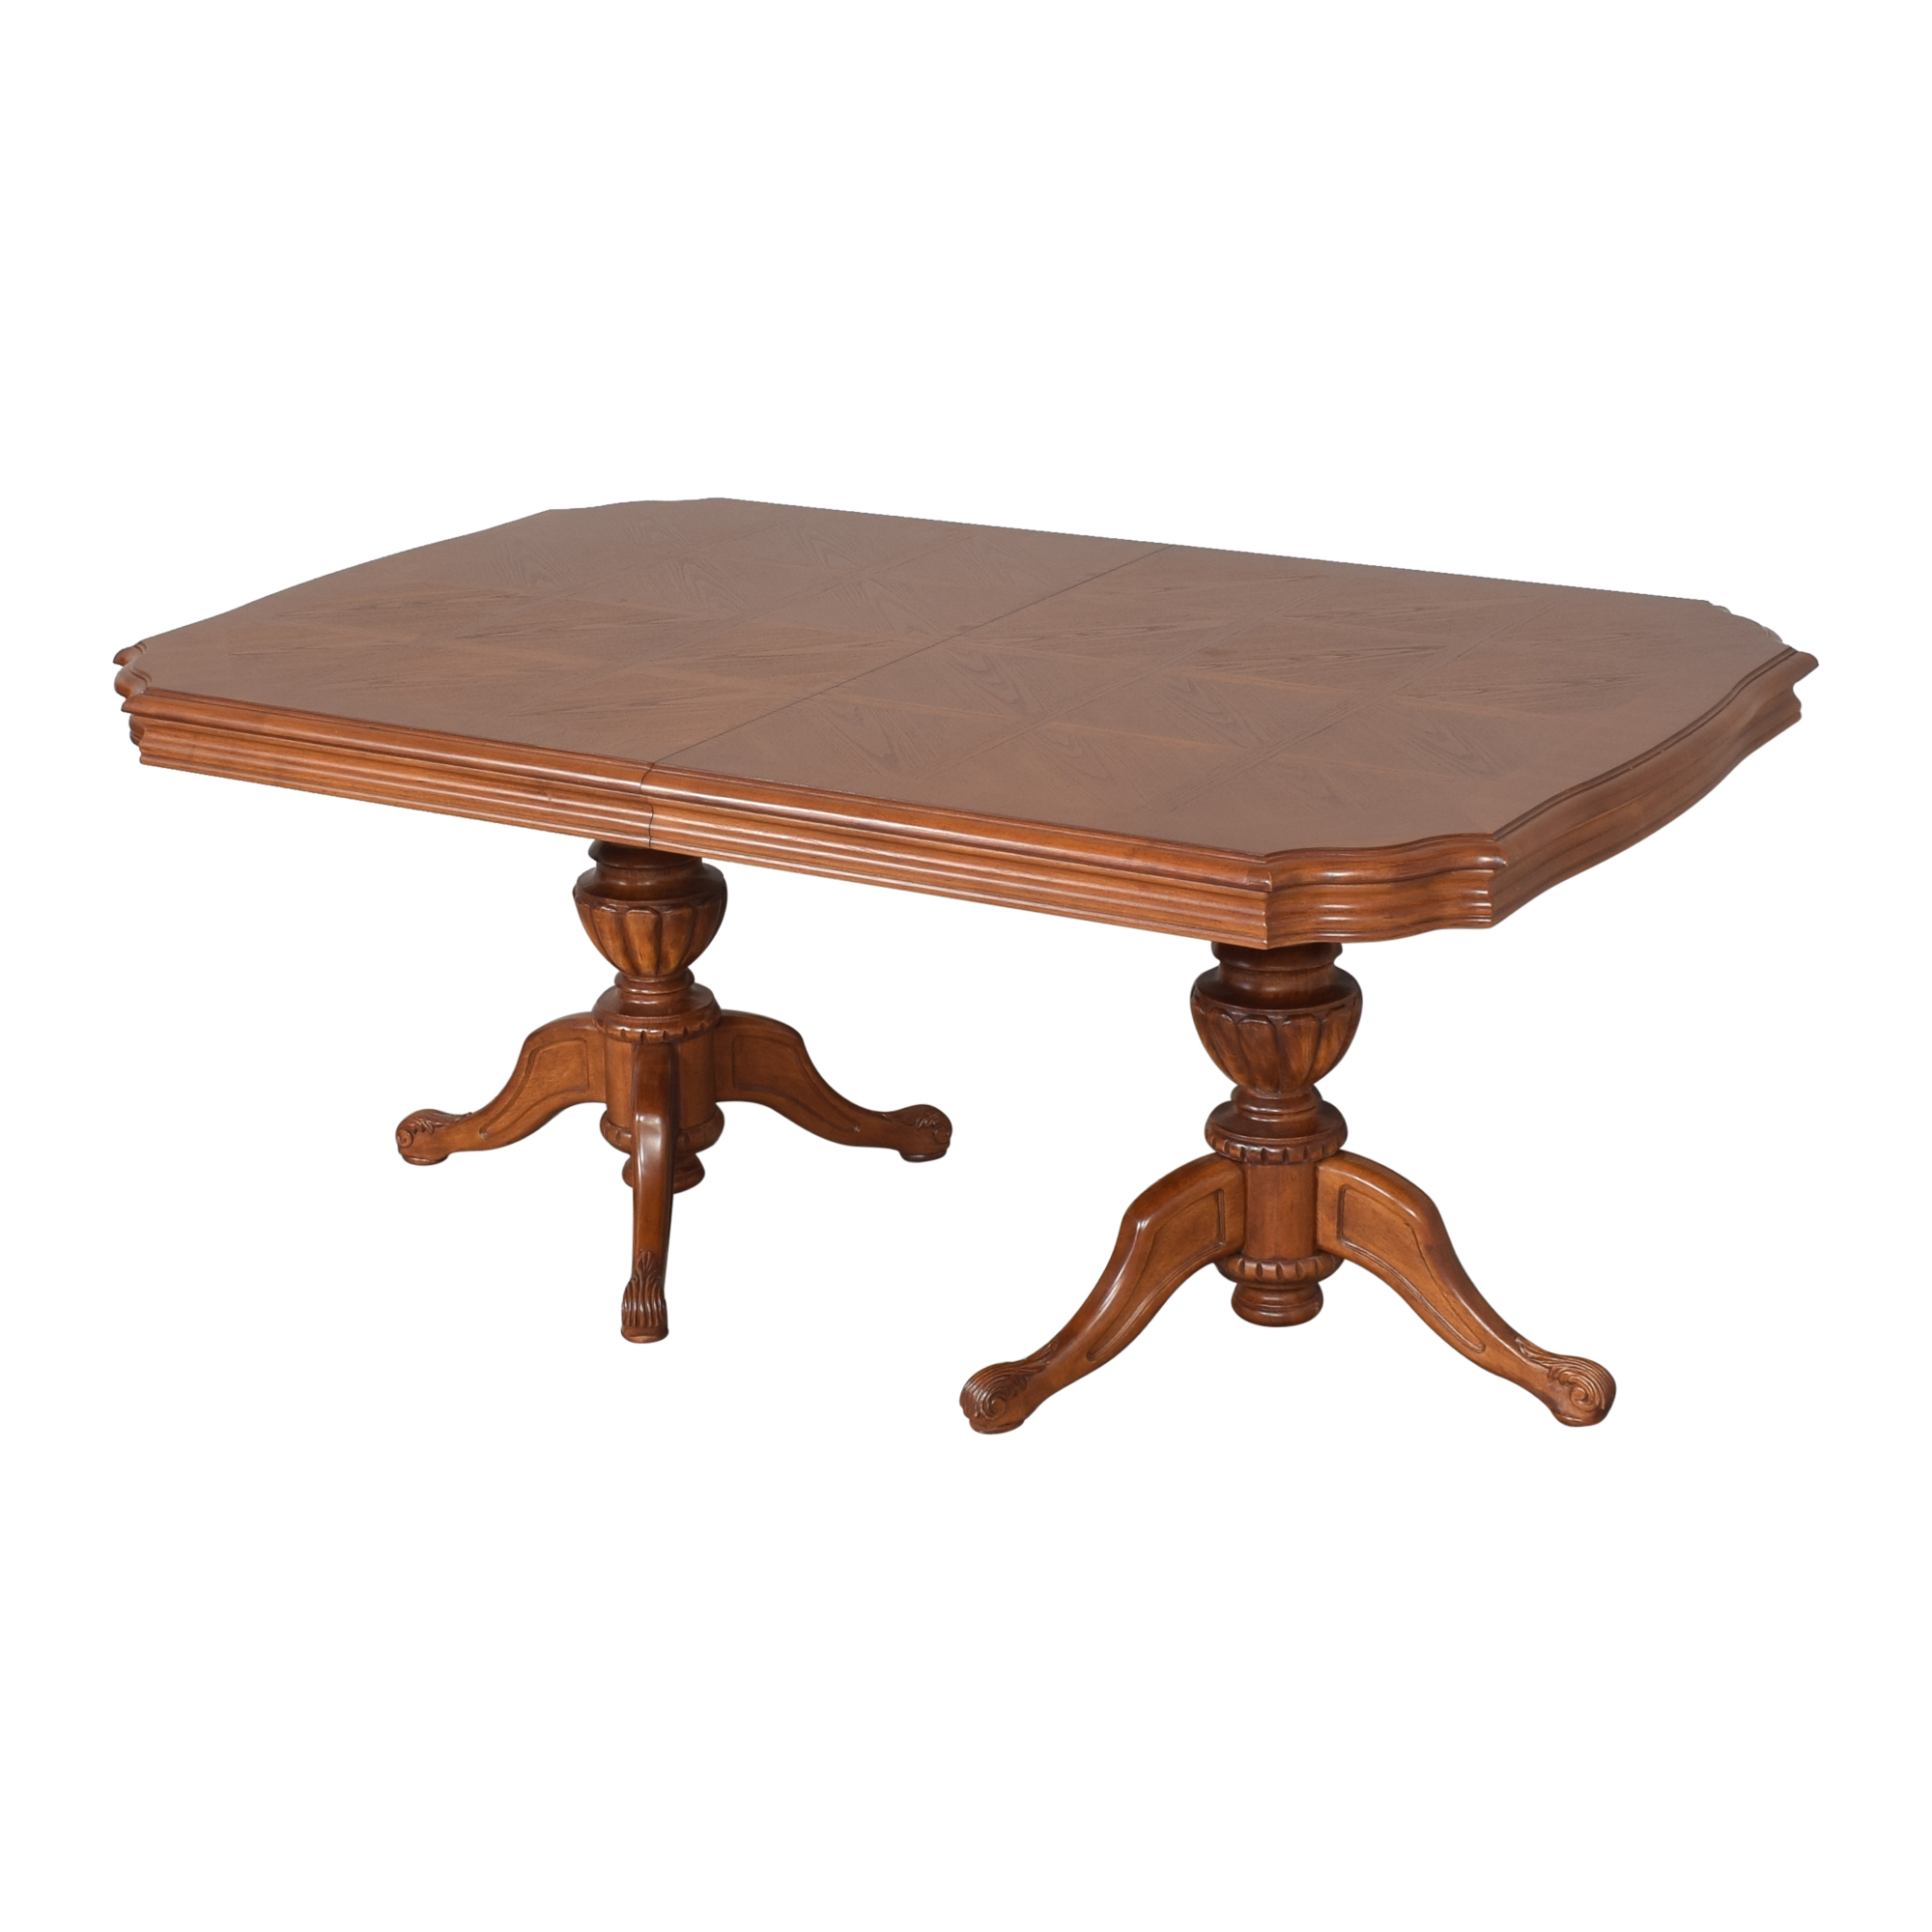 North Carolina Furniture Company North Carolina Furniture Extendable Dining Table second hand